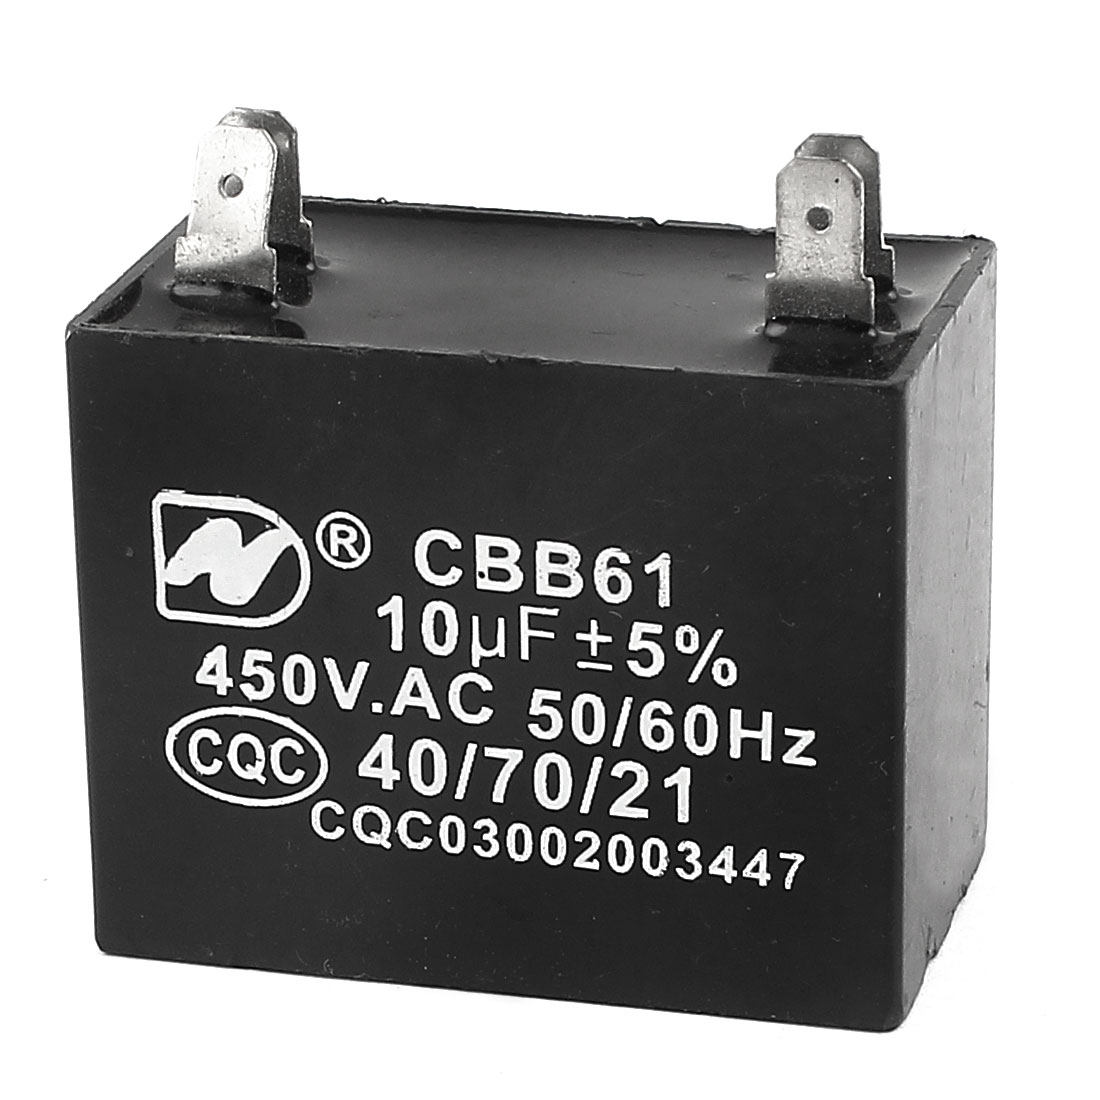 CBB61 10uF 4 Soldered Terminal Rectangular Ceiling Fan Capacitor AC 450V 50/60Hz